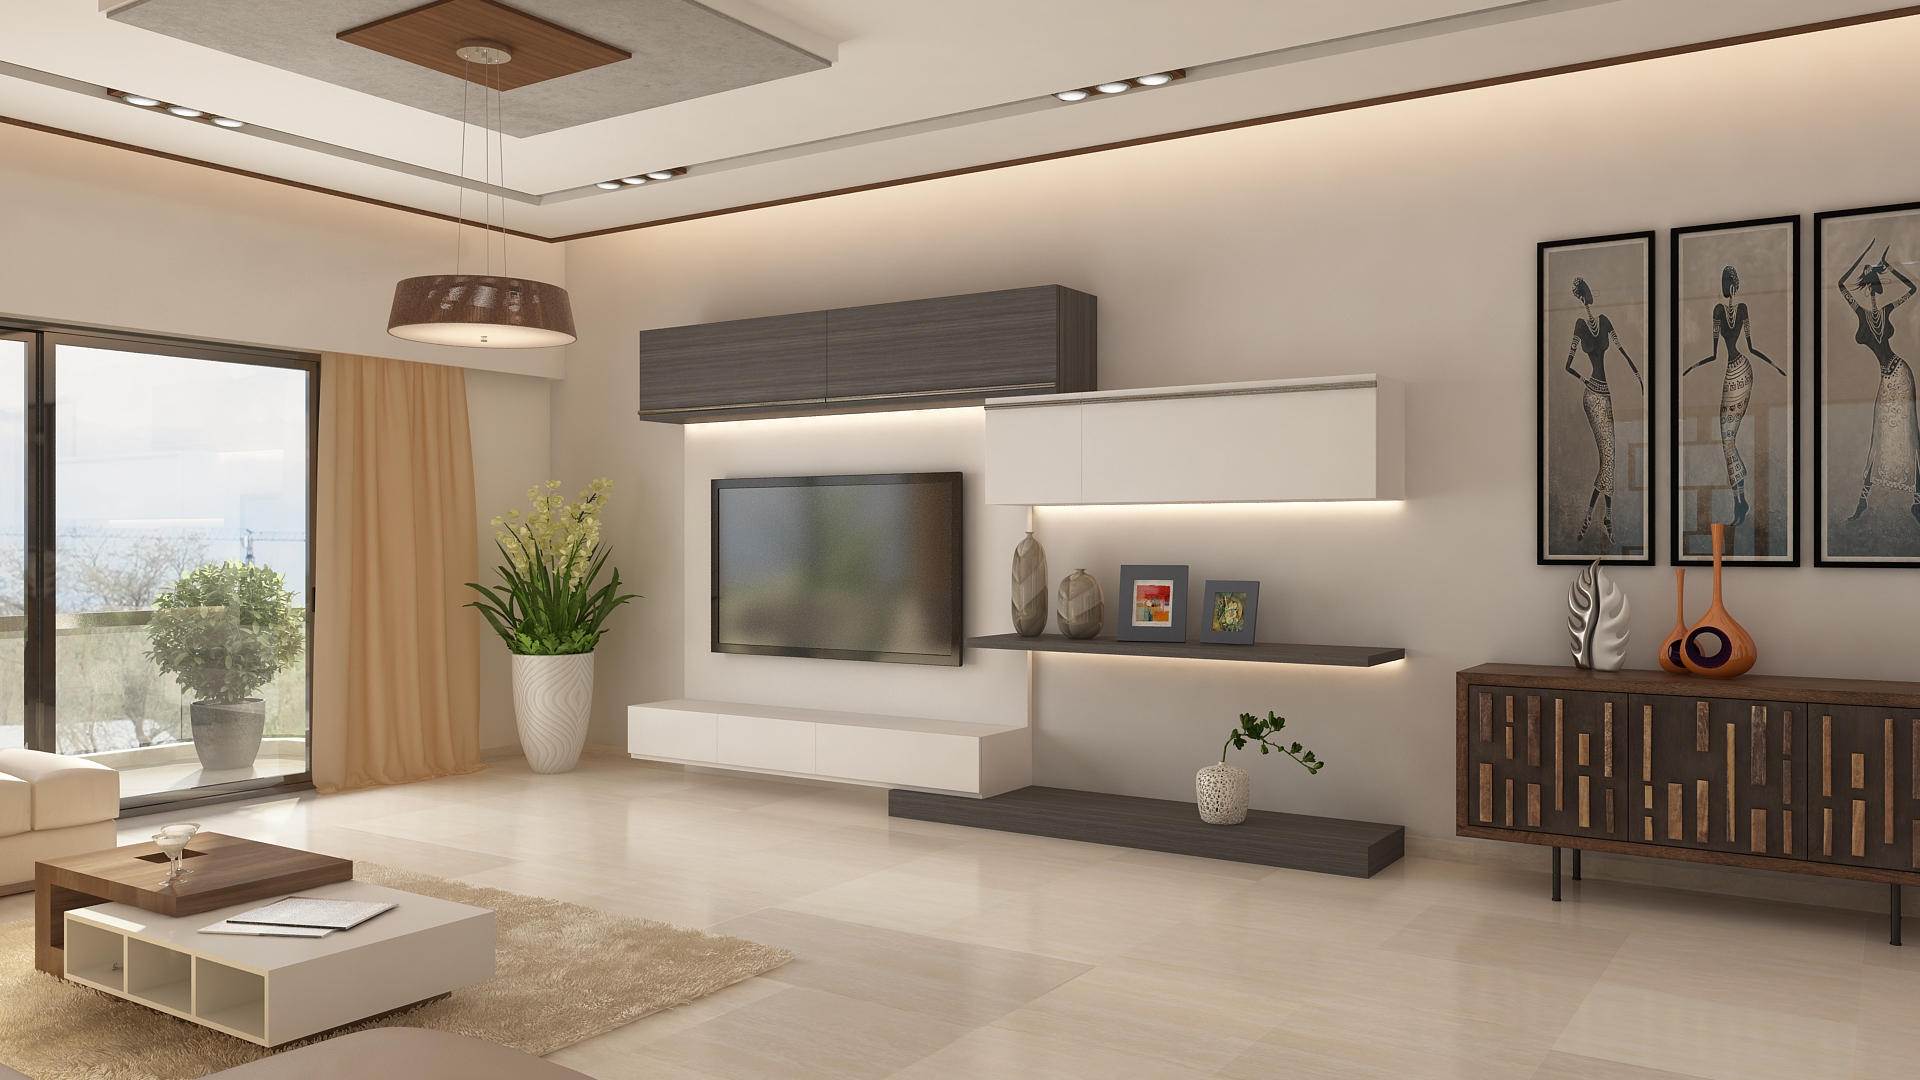 Ghar360 portfolio 2 bhk apartment interior design in jp - Pictures of interior design living rooms ...